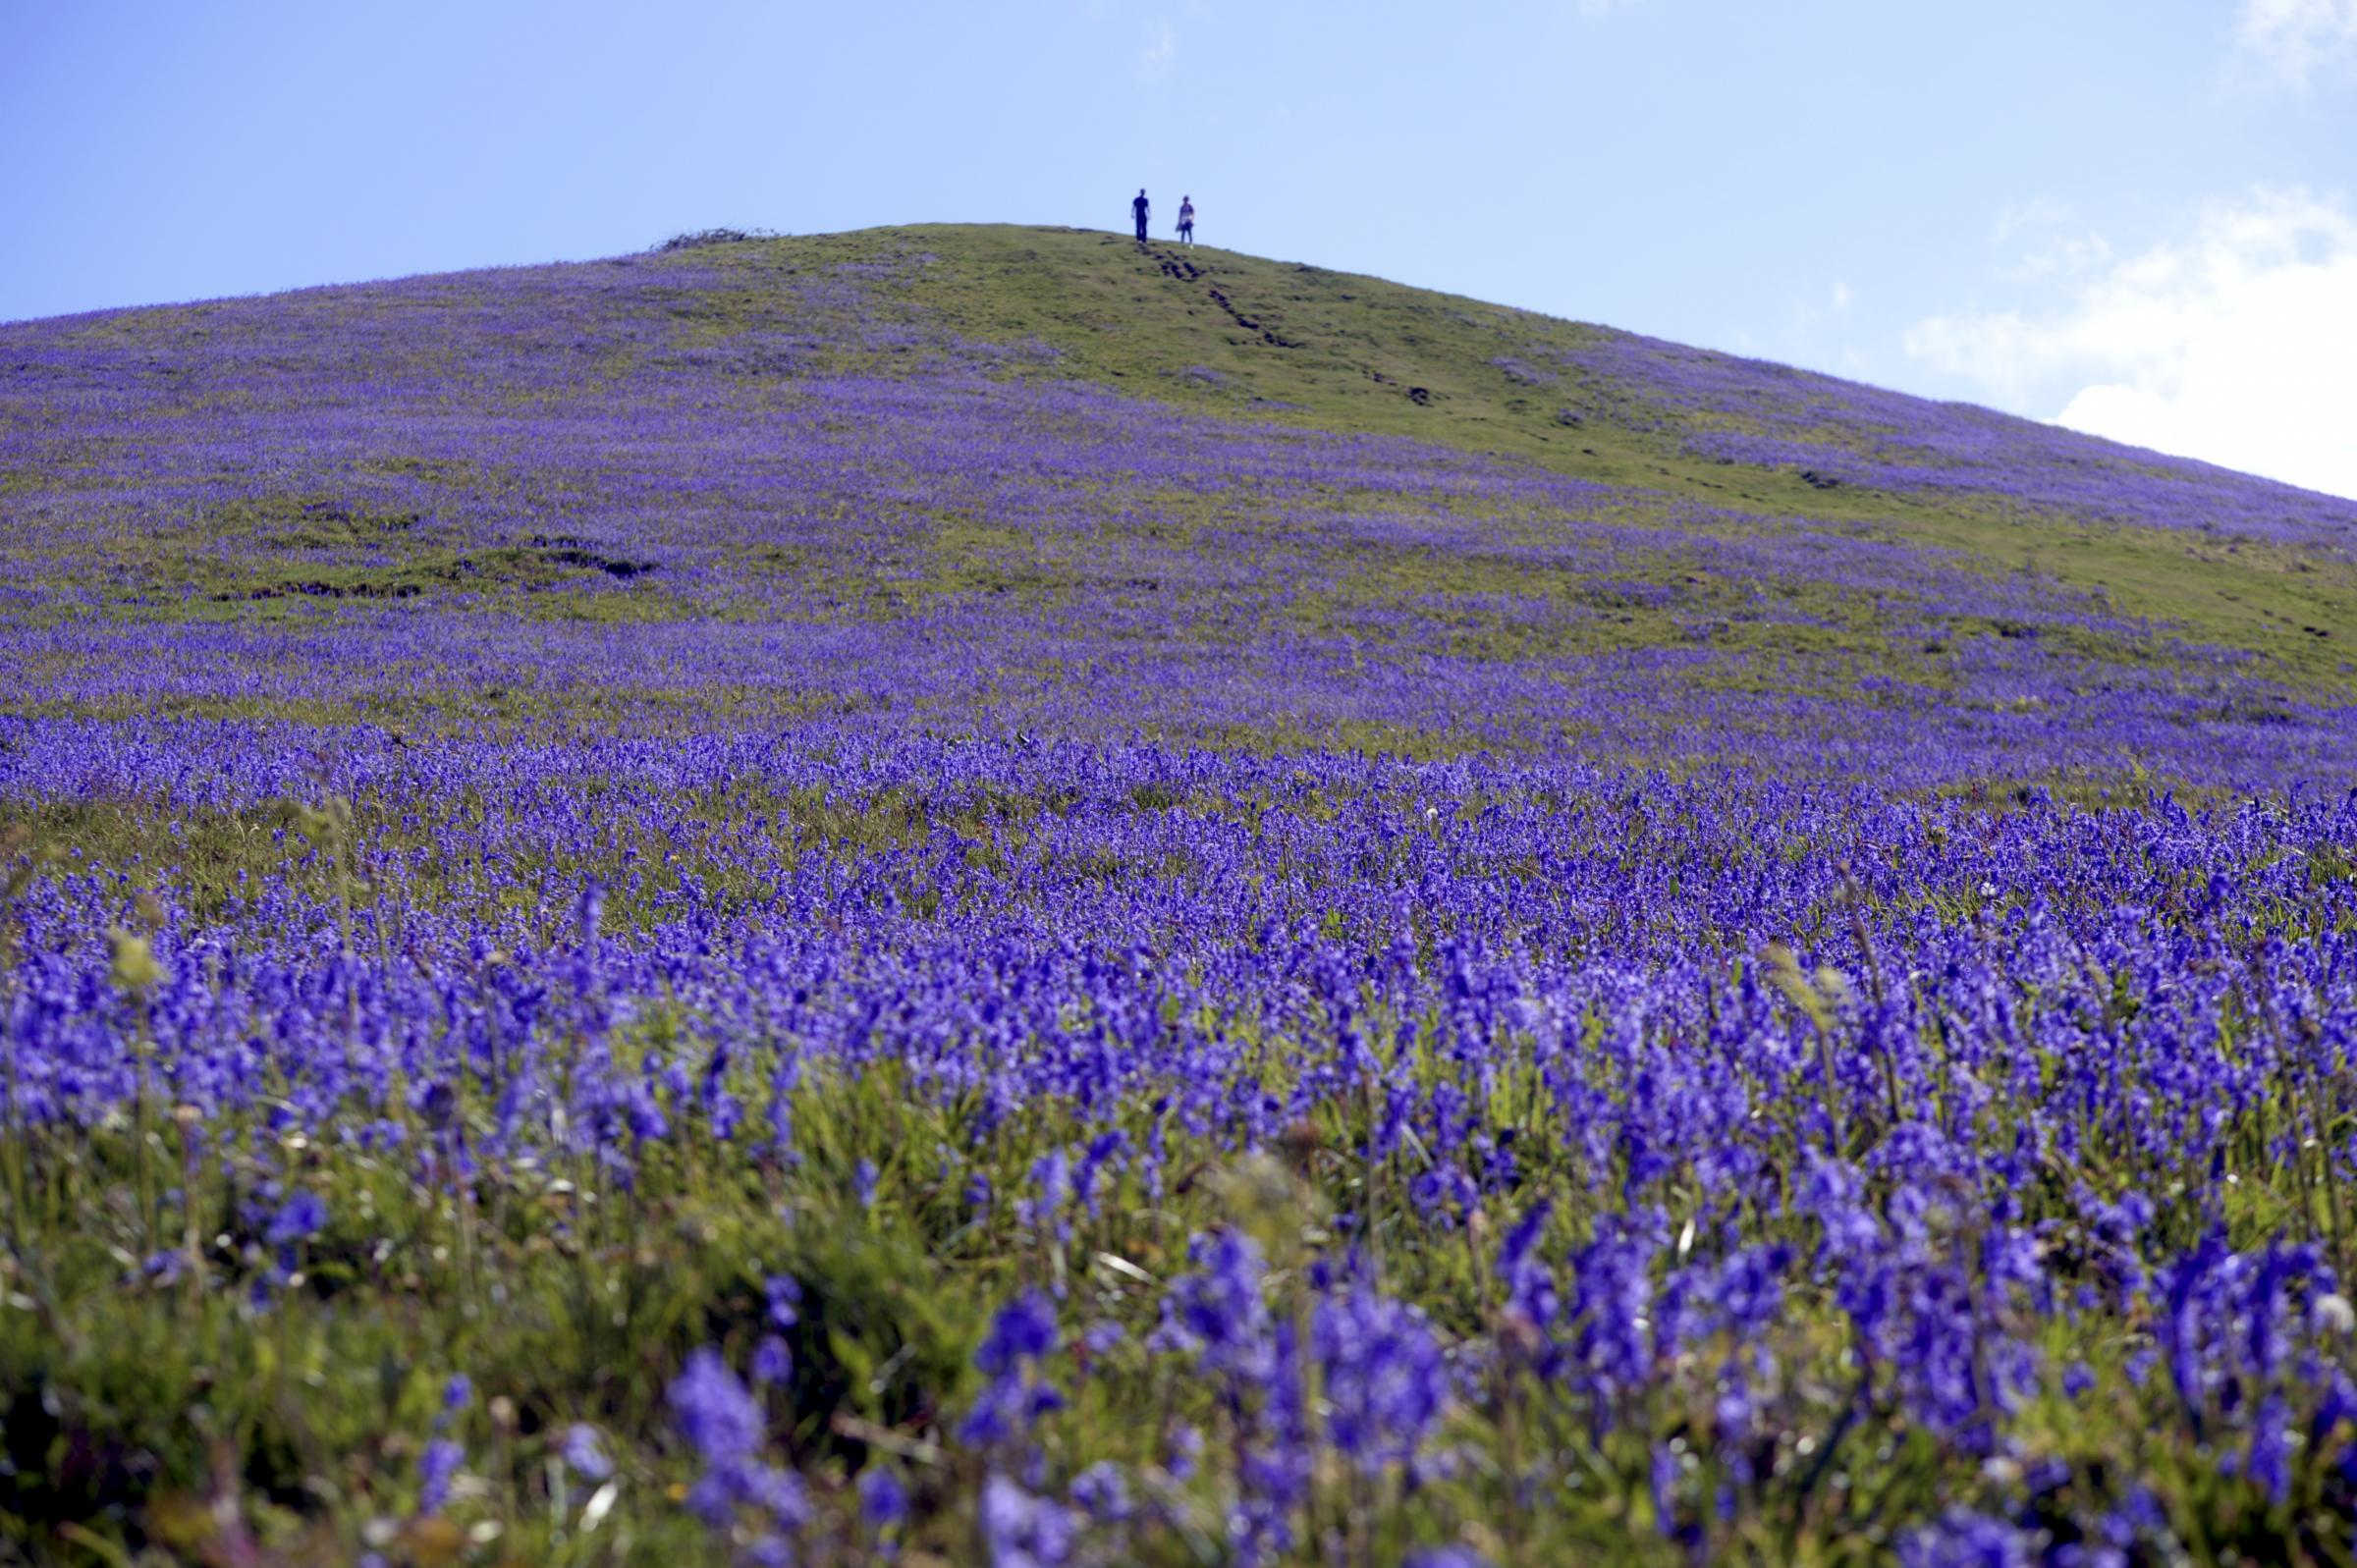 Bluebells on Cam Peak by Paul Nicholls Photography